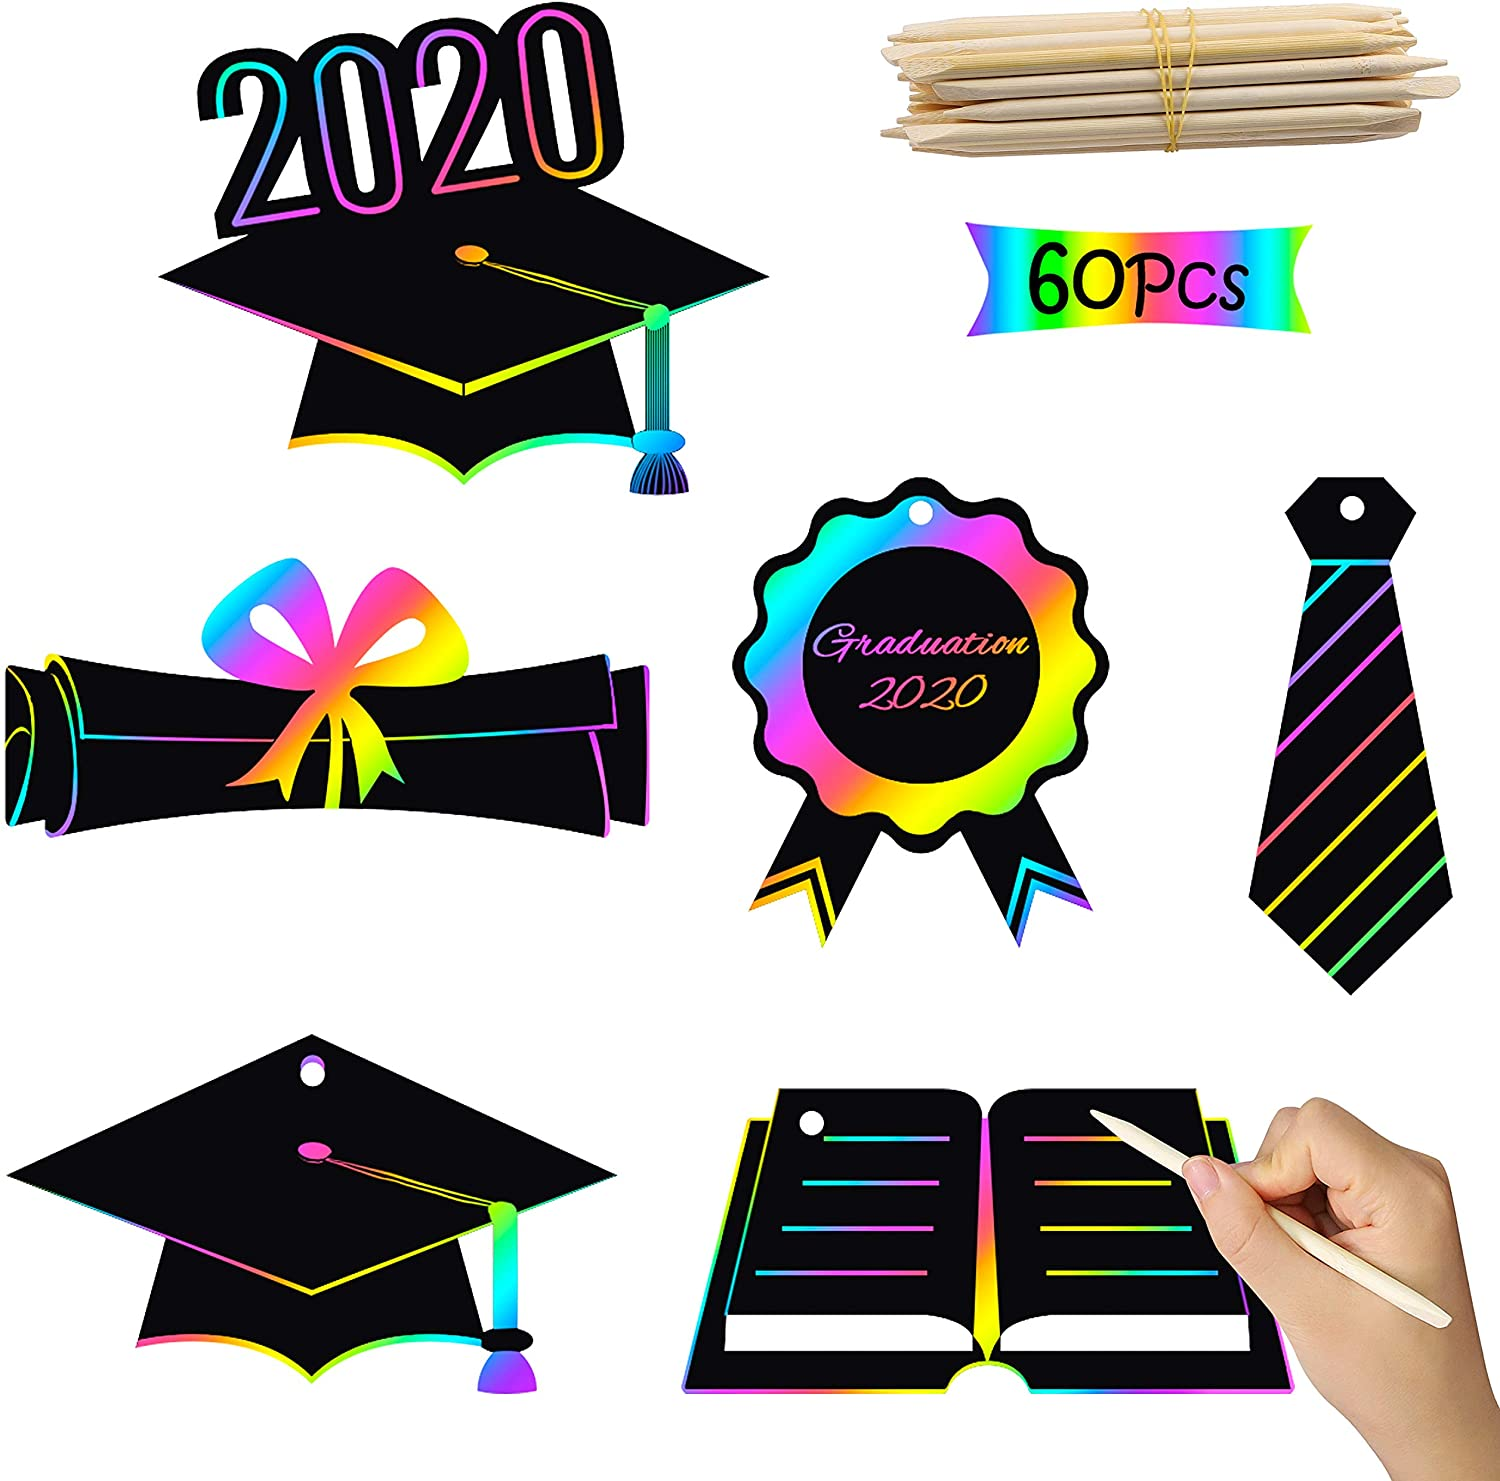 WATINC 60Pcs Graduation Scratch Paper Ornaments, Rainbow Magic Color DIY Art Craft Kit for Kids 2020 Graduation Party Favors, Birthday Gifts for Boys Girls, Grad Gift Tag with Wood Stylus and Ribbon